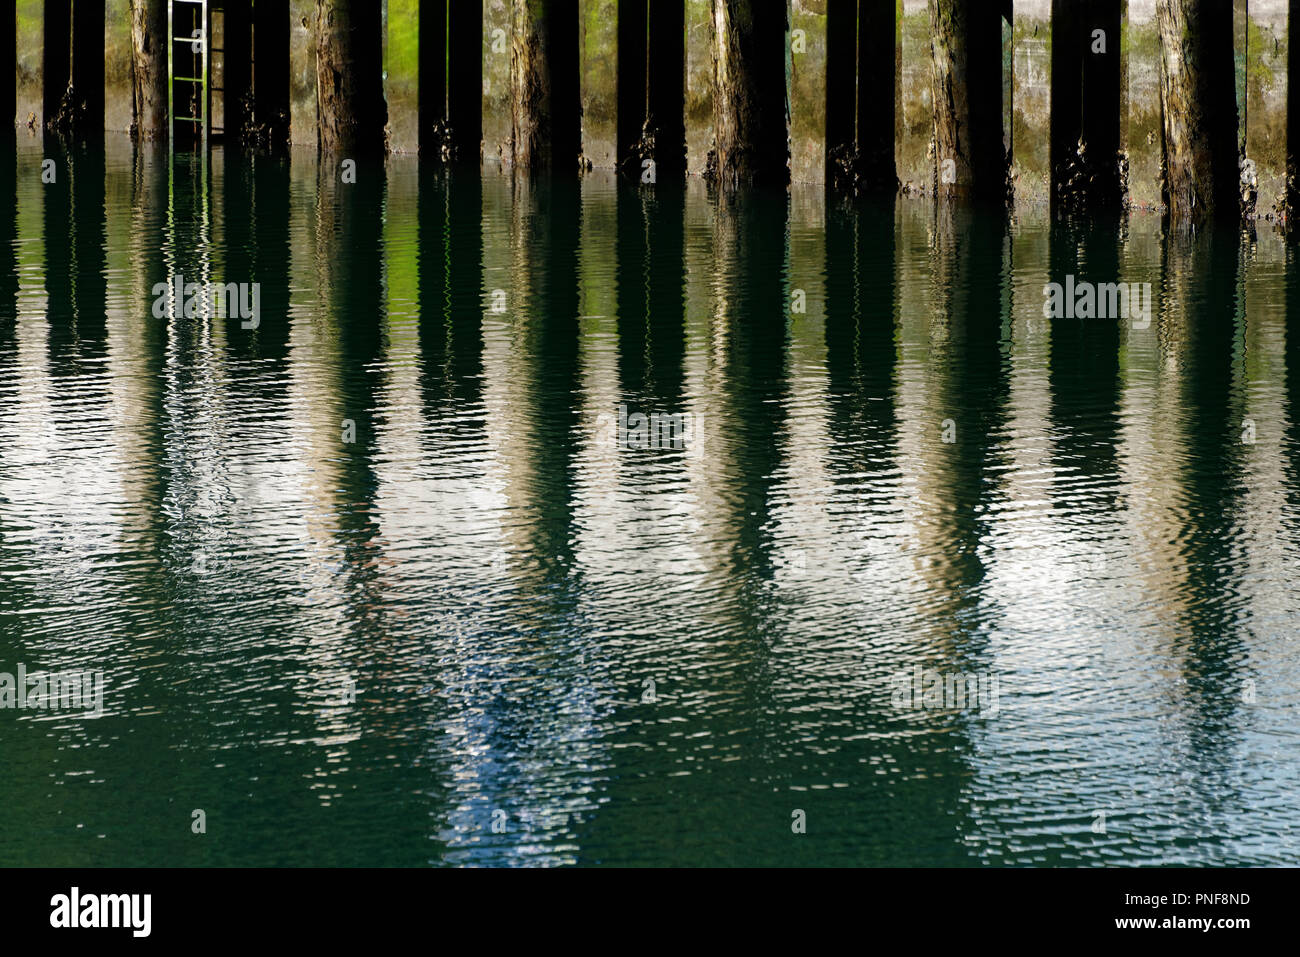 A reflection of posts in the sea, where the real world meets its reflection. - Stock Image